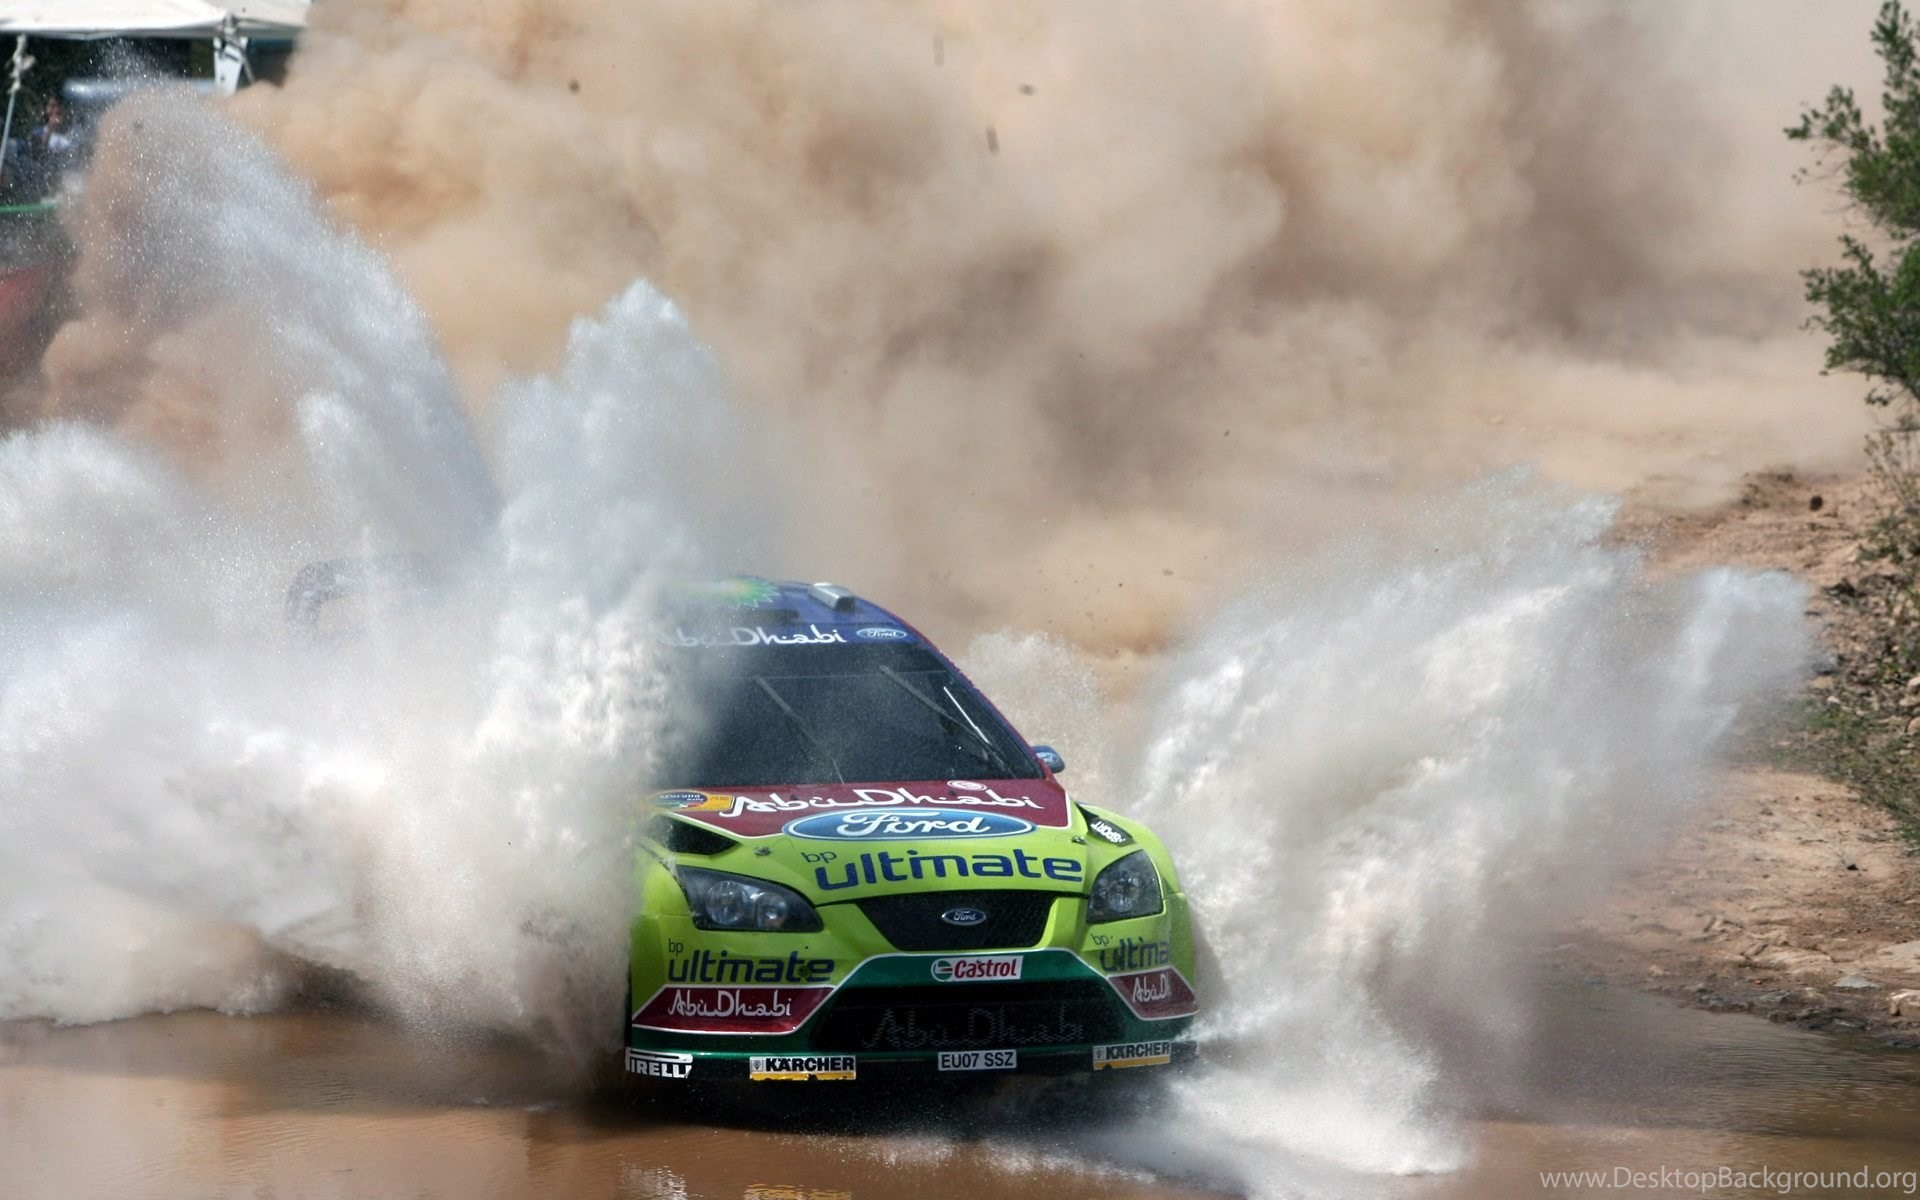 Polo Wallpaper For Iphone Wrc Wallpapers Hd 69 Images